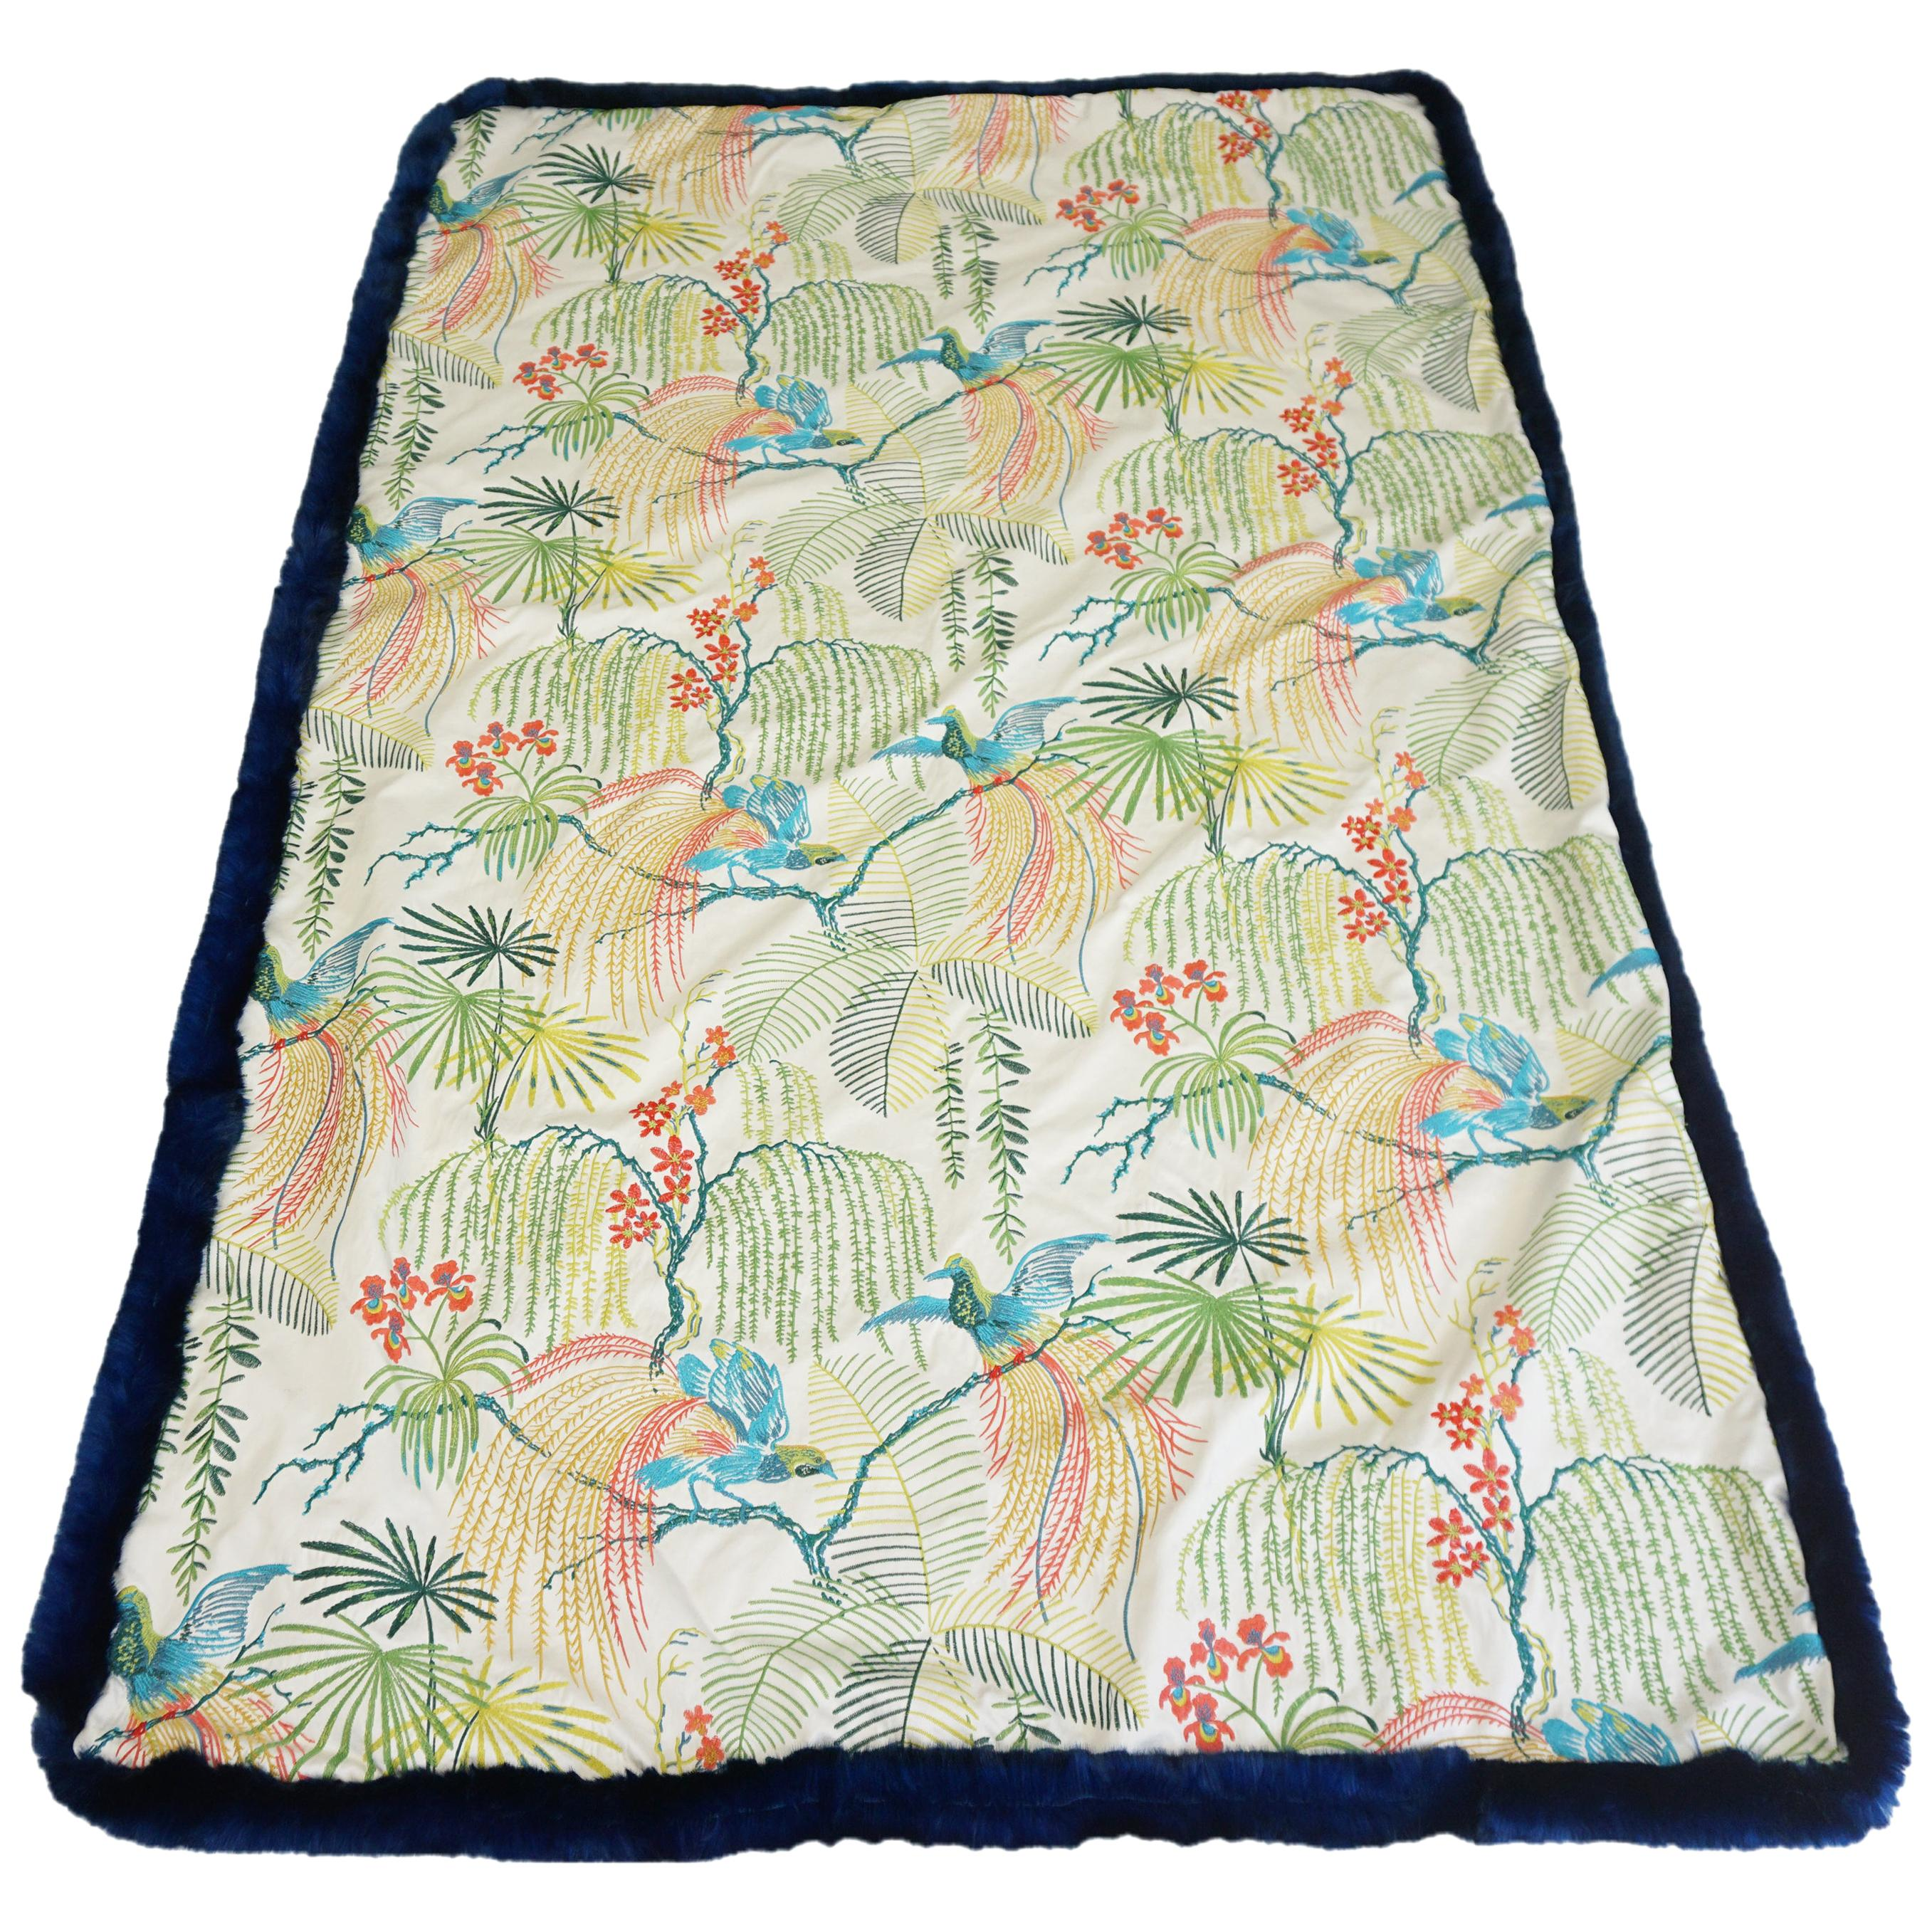 Throw Blanket with Rainforest Embroidery